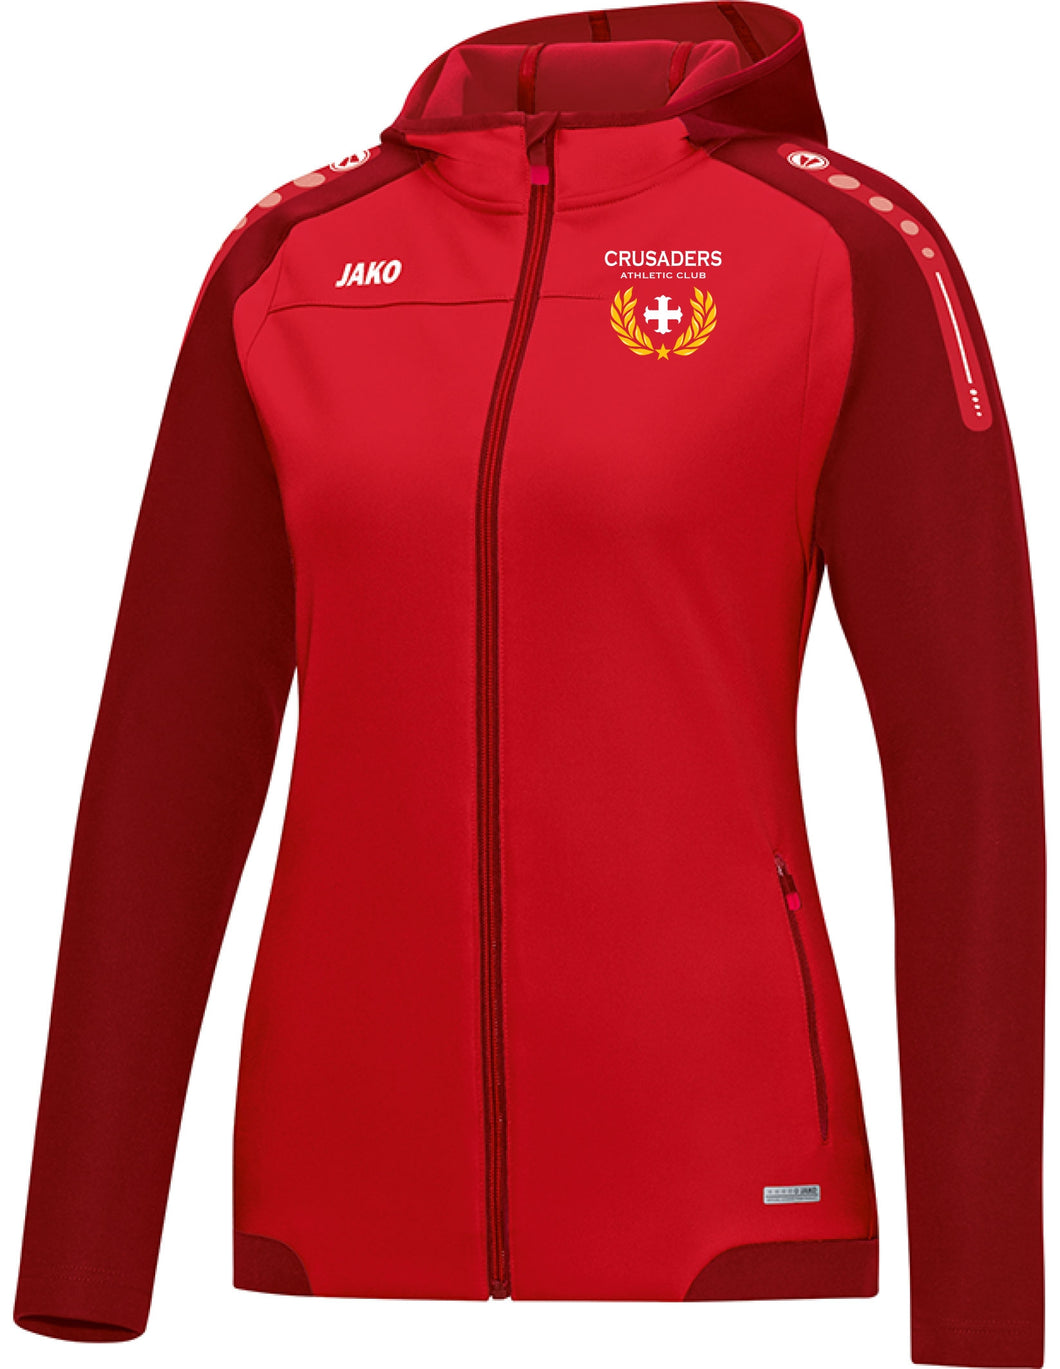 WOMENS JAKO CRUSADERS AC HOODY WITH CREST CAC6817CW RED WITH CREST